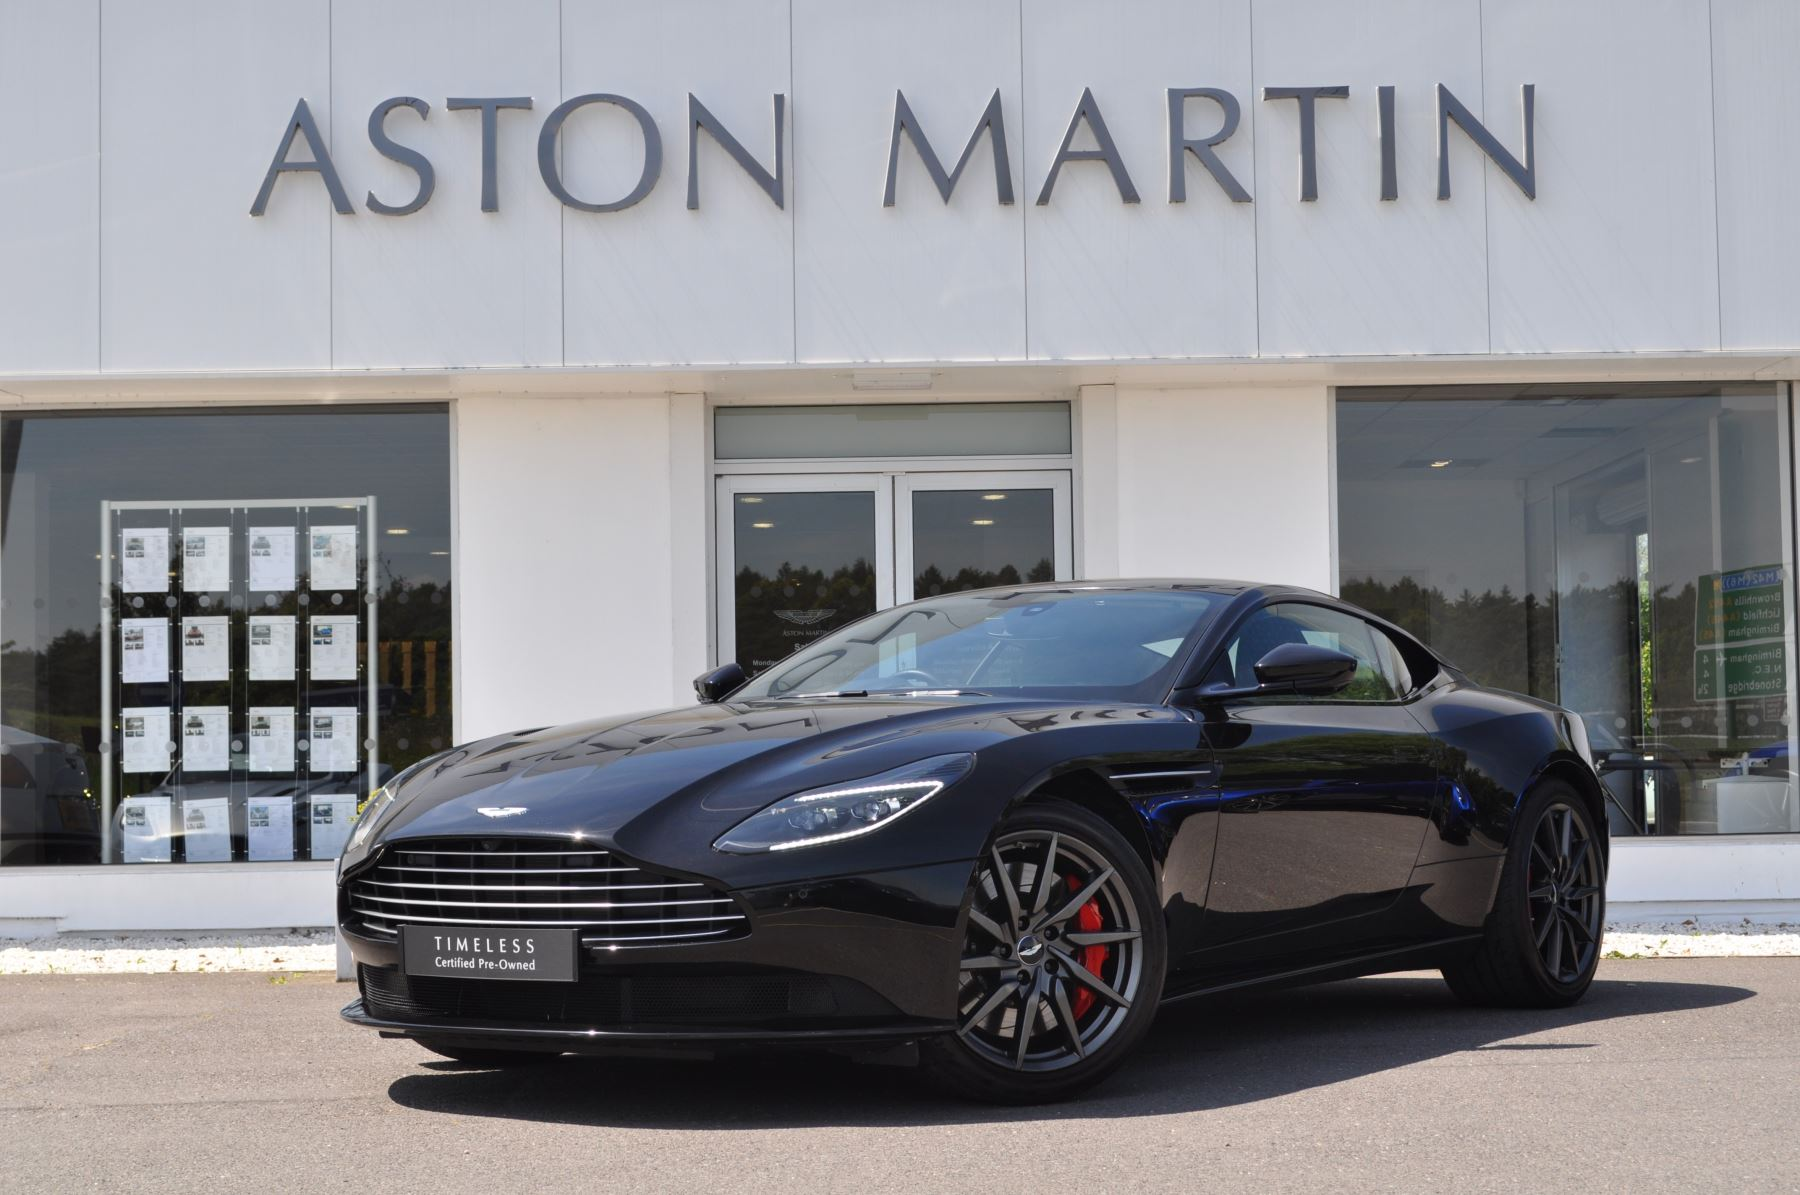 Aston Martin DB11 V8 2dr Touchtronic 4.0 Automatic 3 door Coupe (2018) image